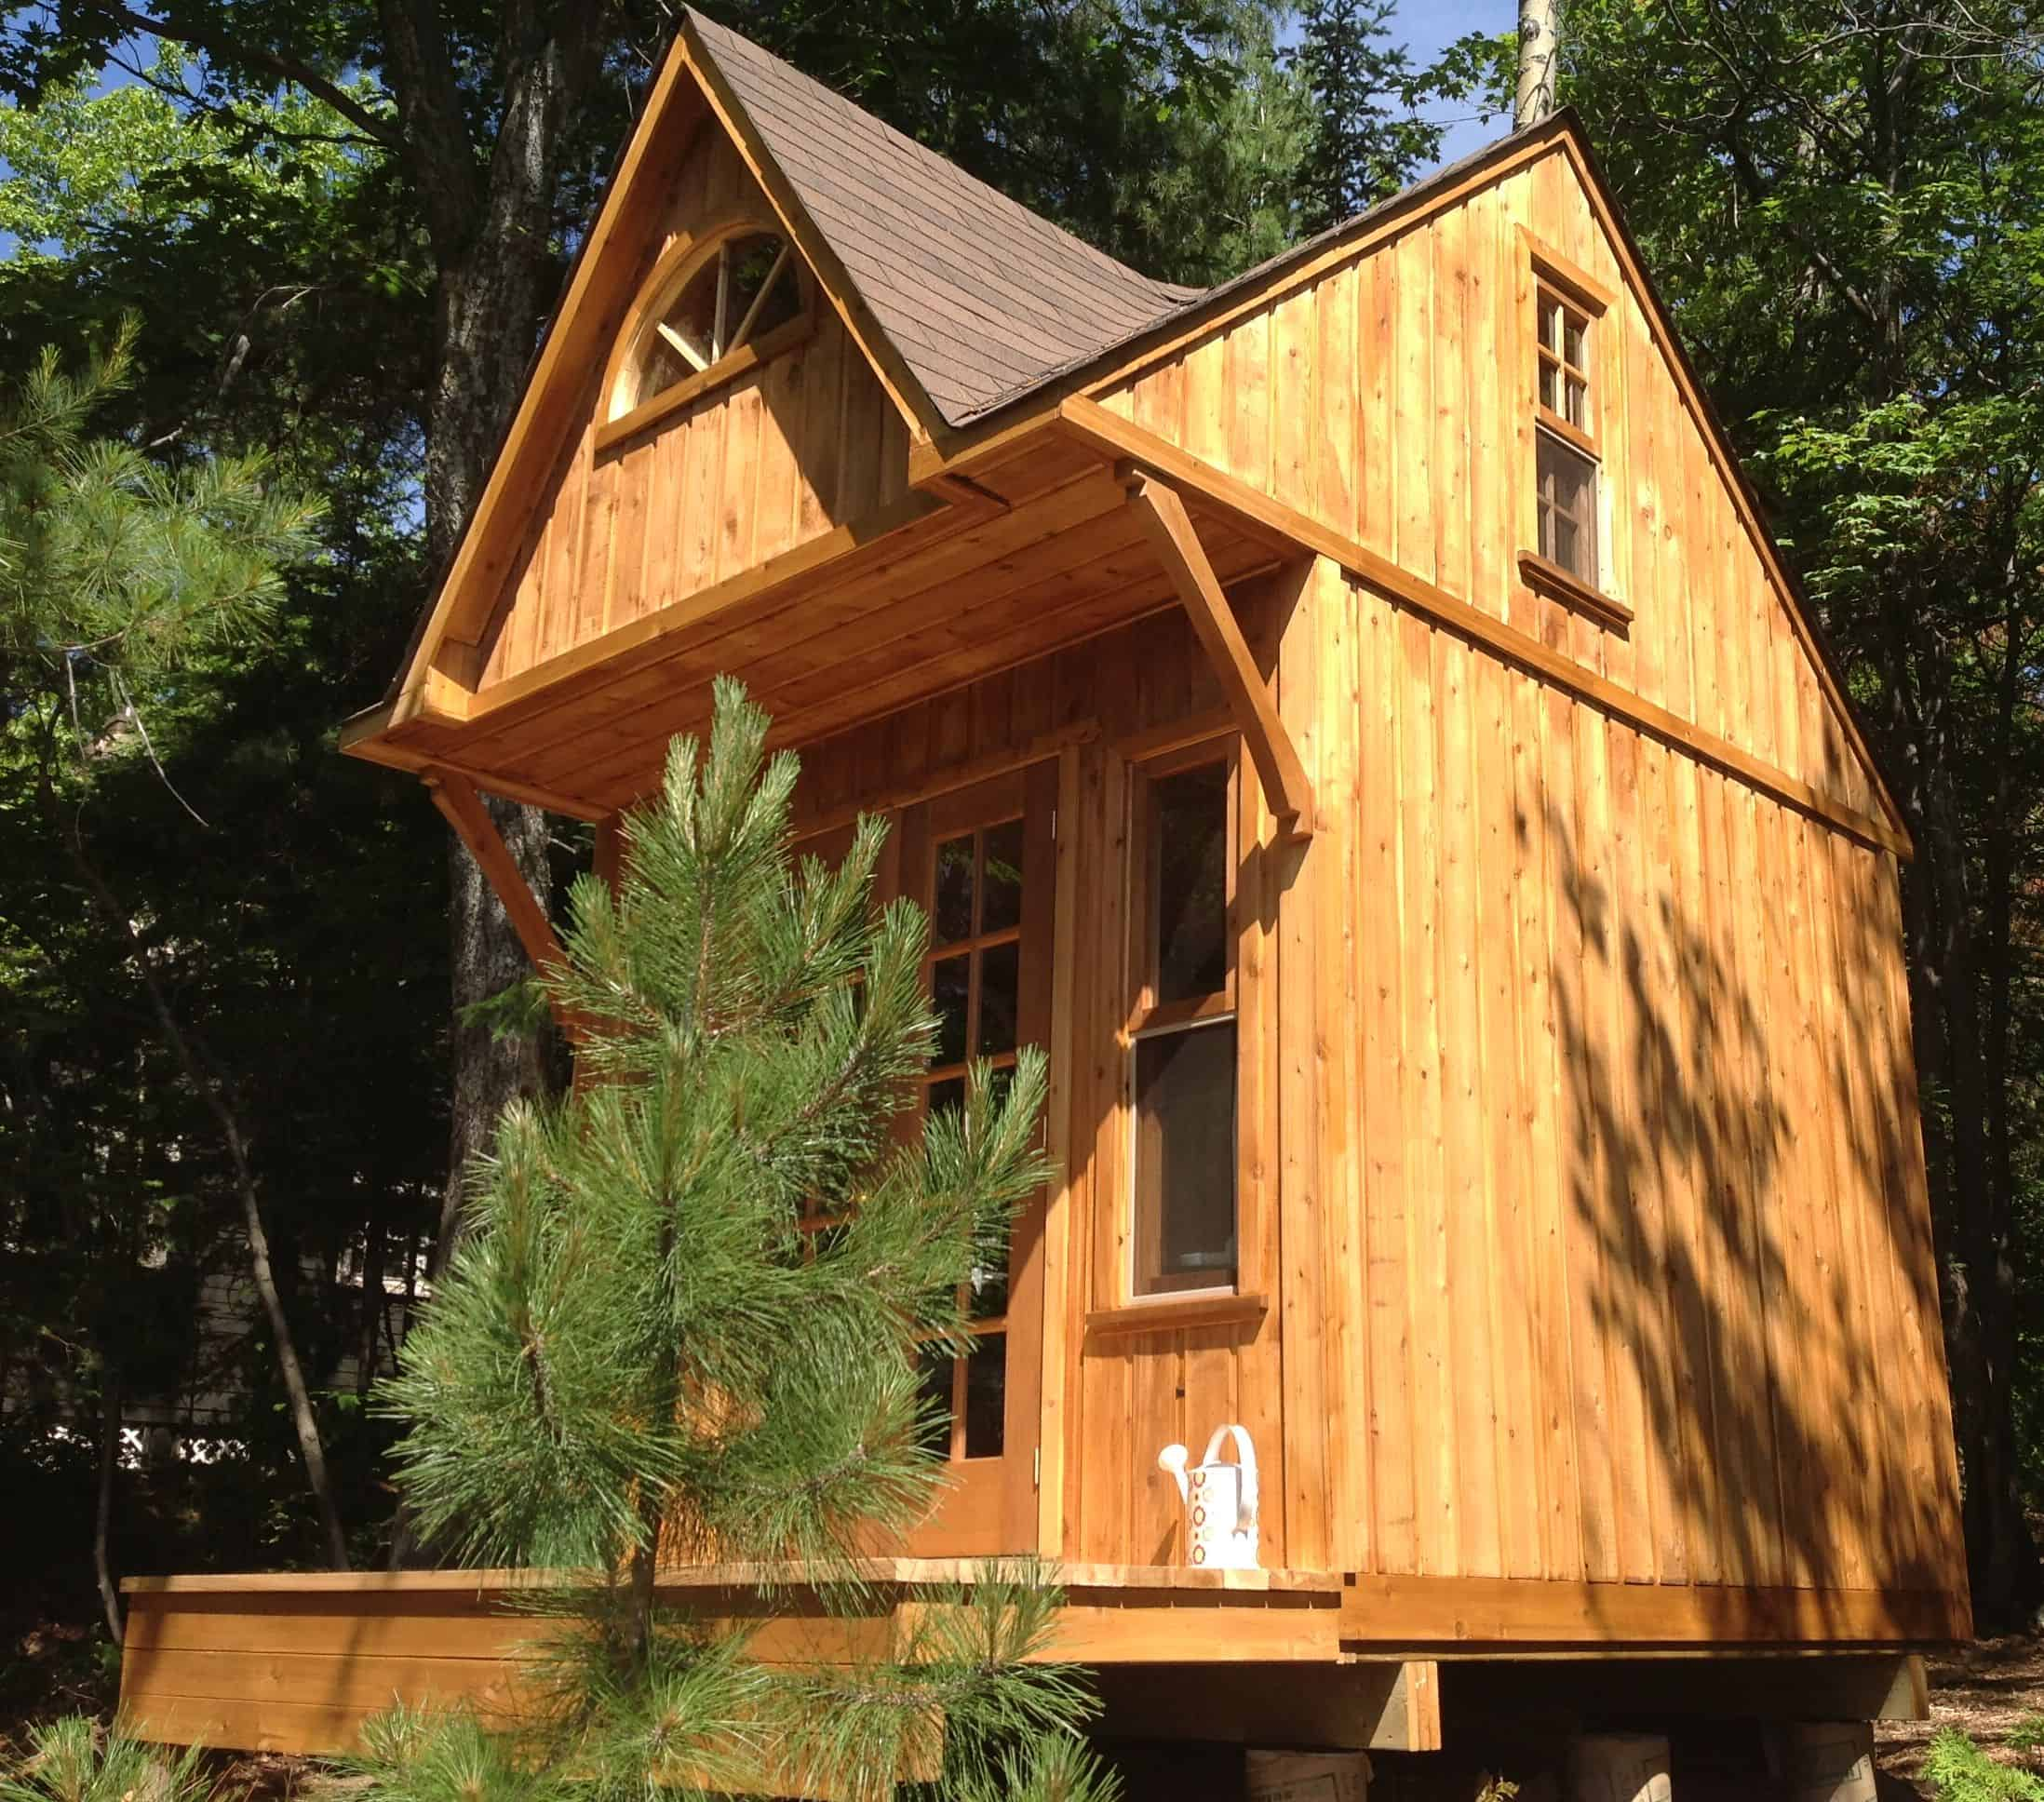 The Ultimate Bunkie - Summerwood Products